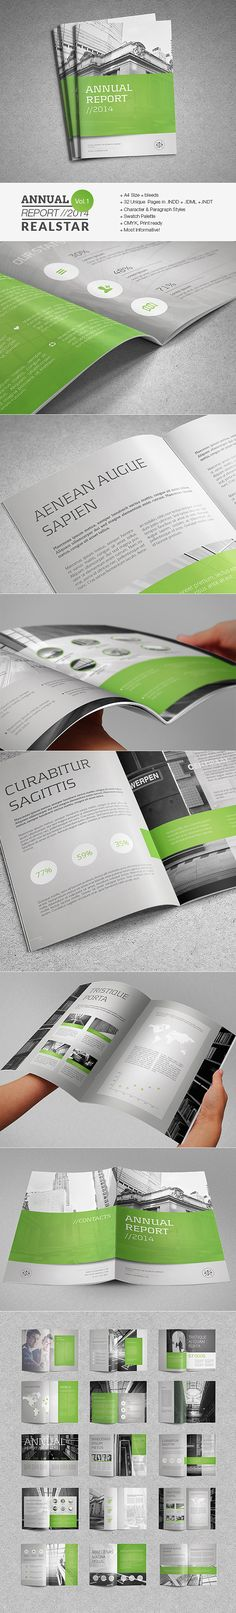 Annual Report Template II by Realstar, via Behance